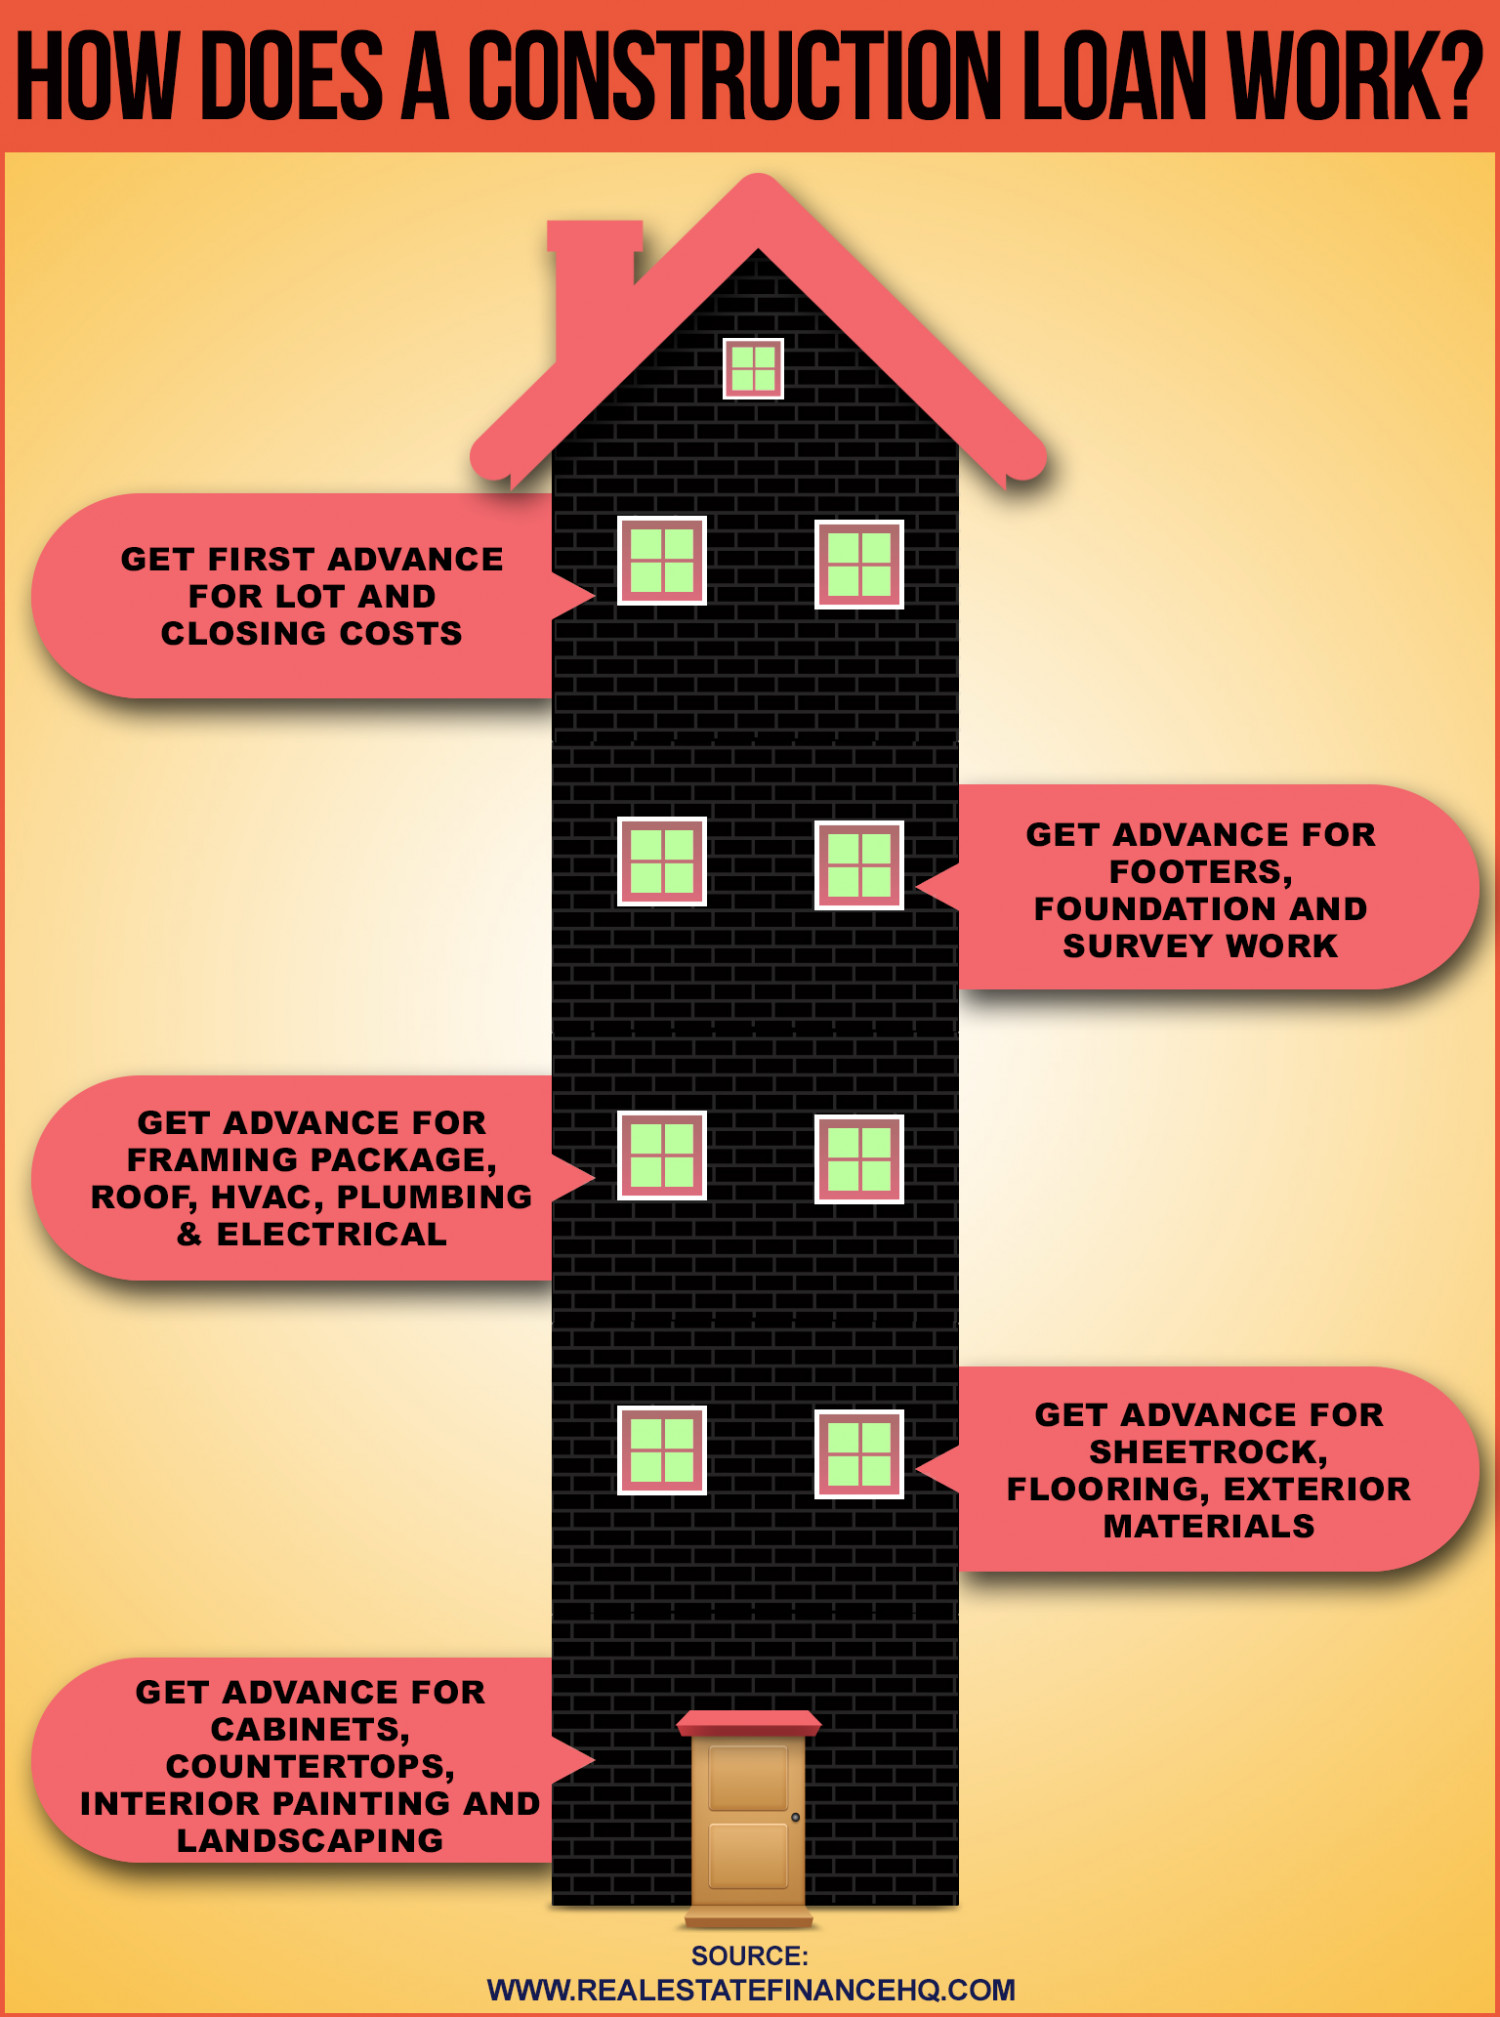 How Does A Construction Loan Work Infographic